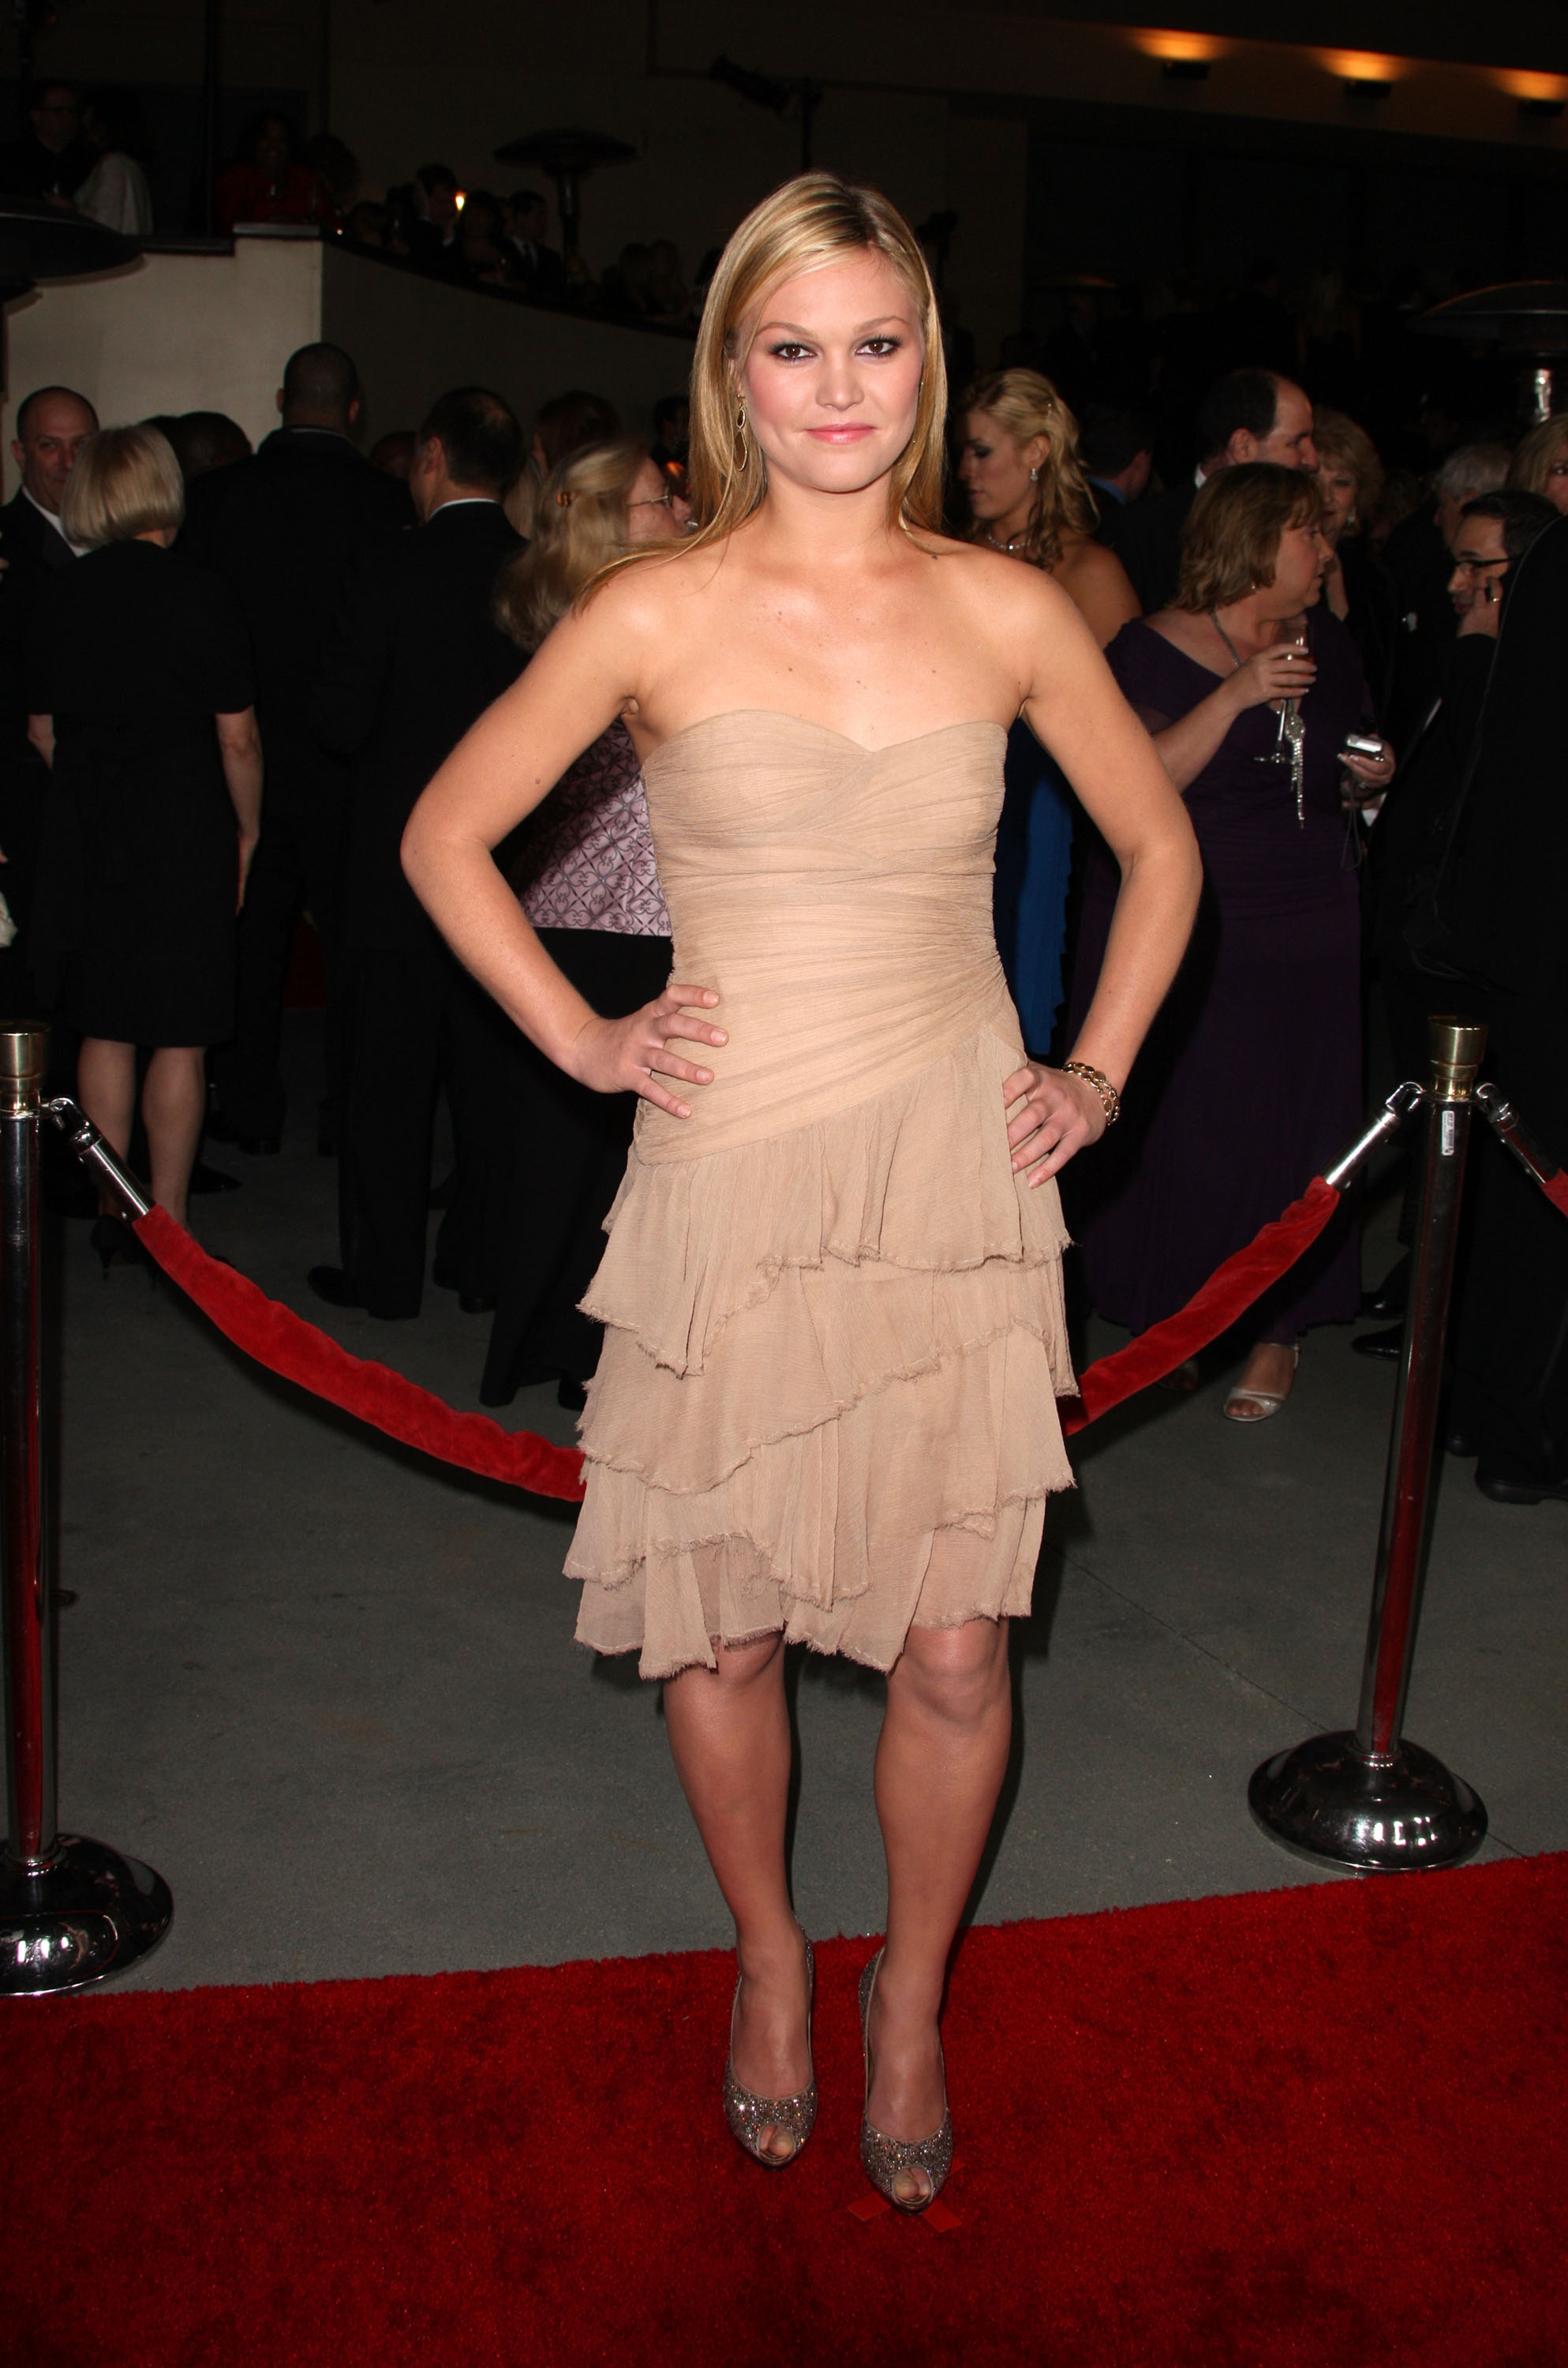 HOLLYWOOD - JANUARY 29: Actress Julia Stiles arrives at the 63rd Annual Directors Guild Of America Awards held at the Grand Ballroom at Hollywood & Highland on January 29, 2011 in Hollywood, California. (Photo by Frederick M. Brown/Getty Images)